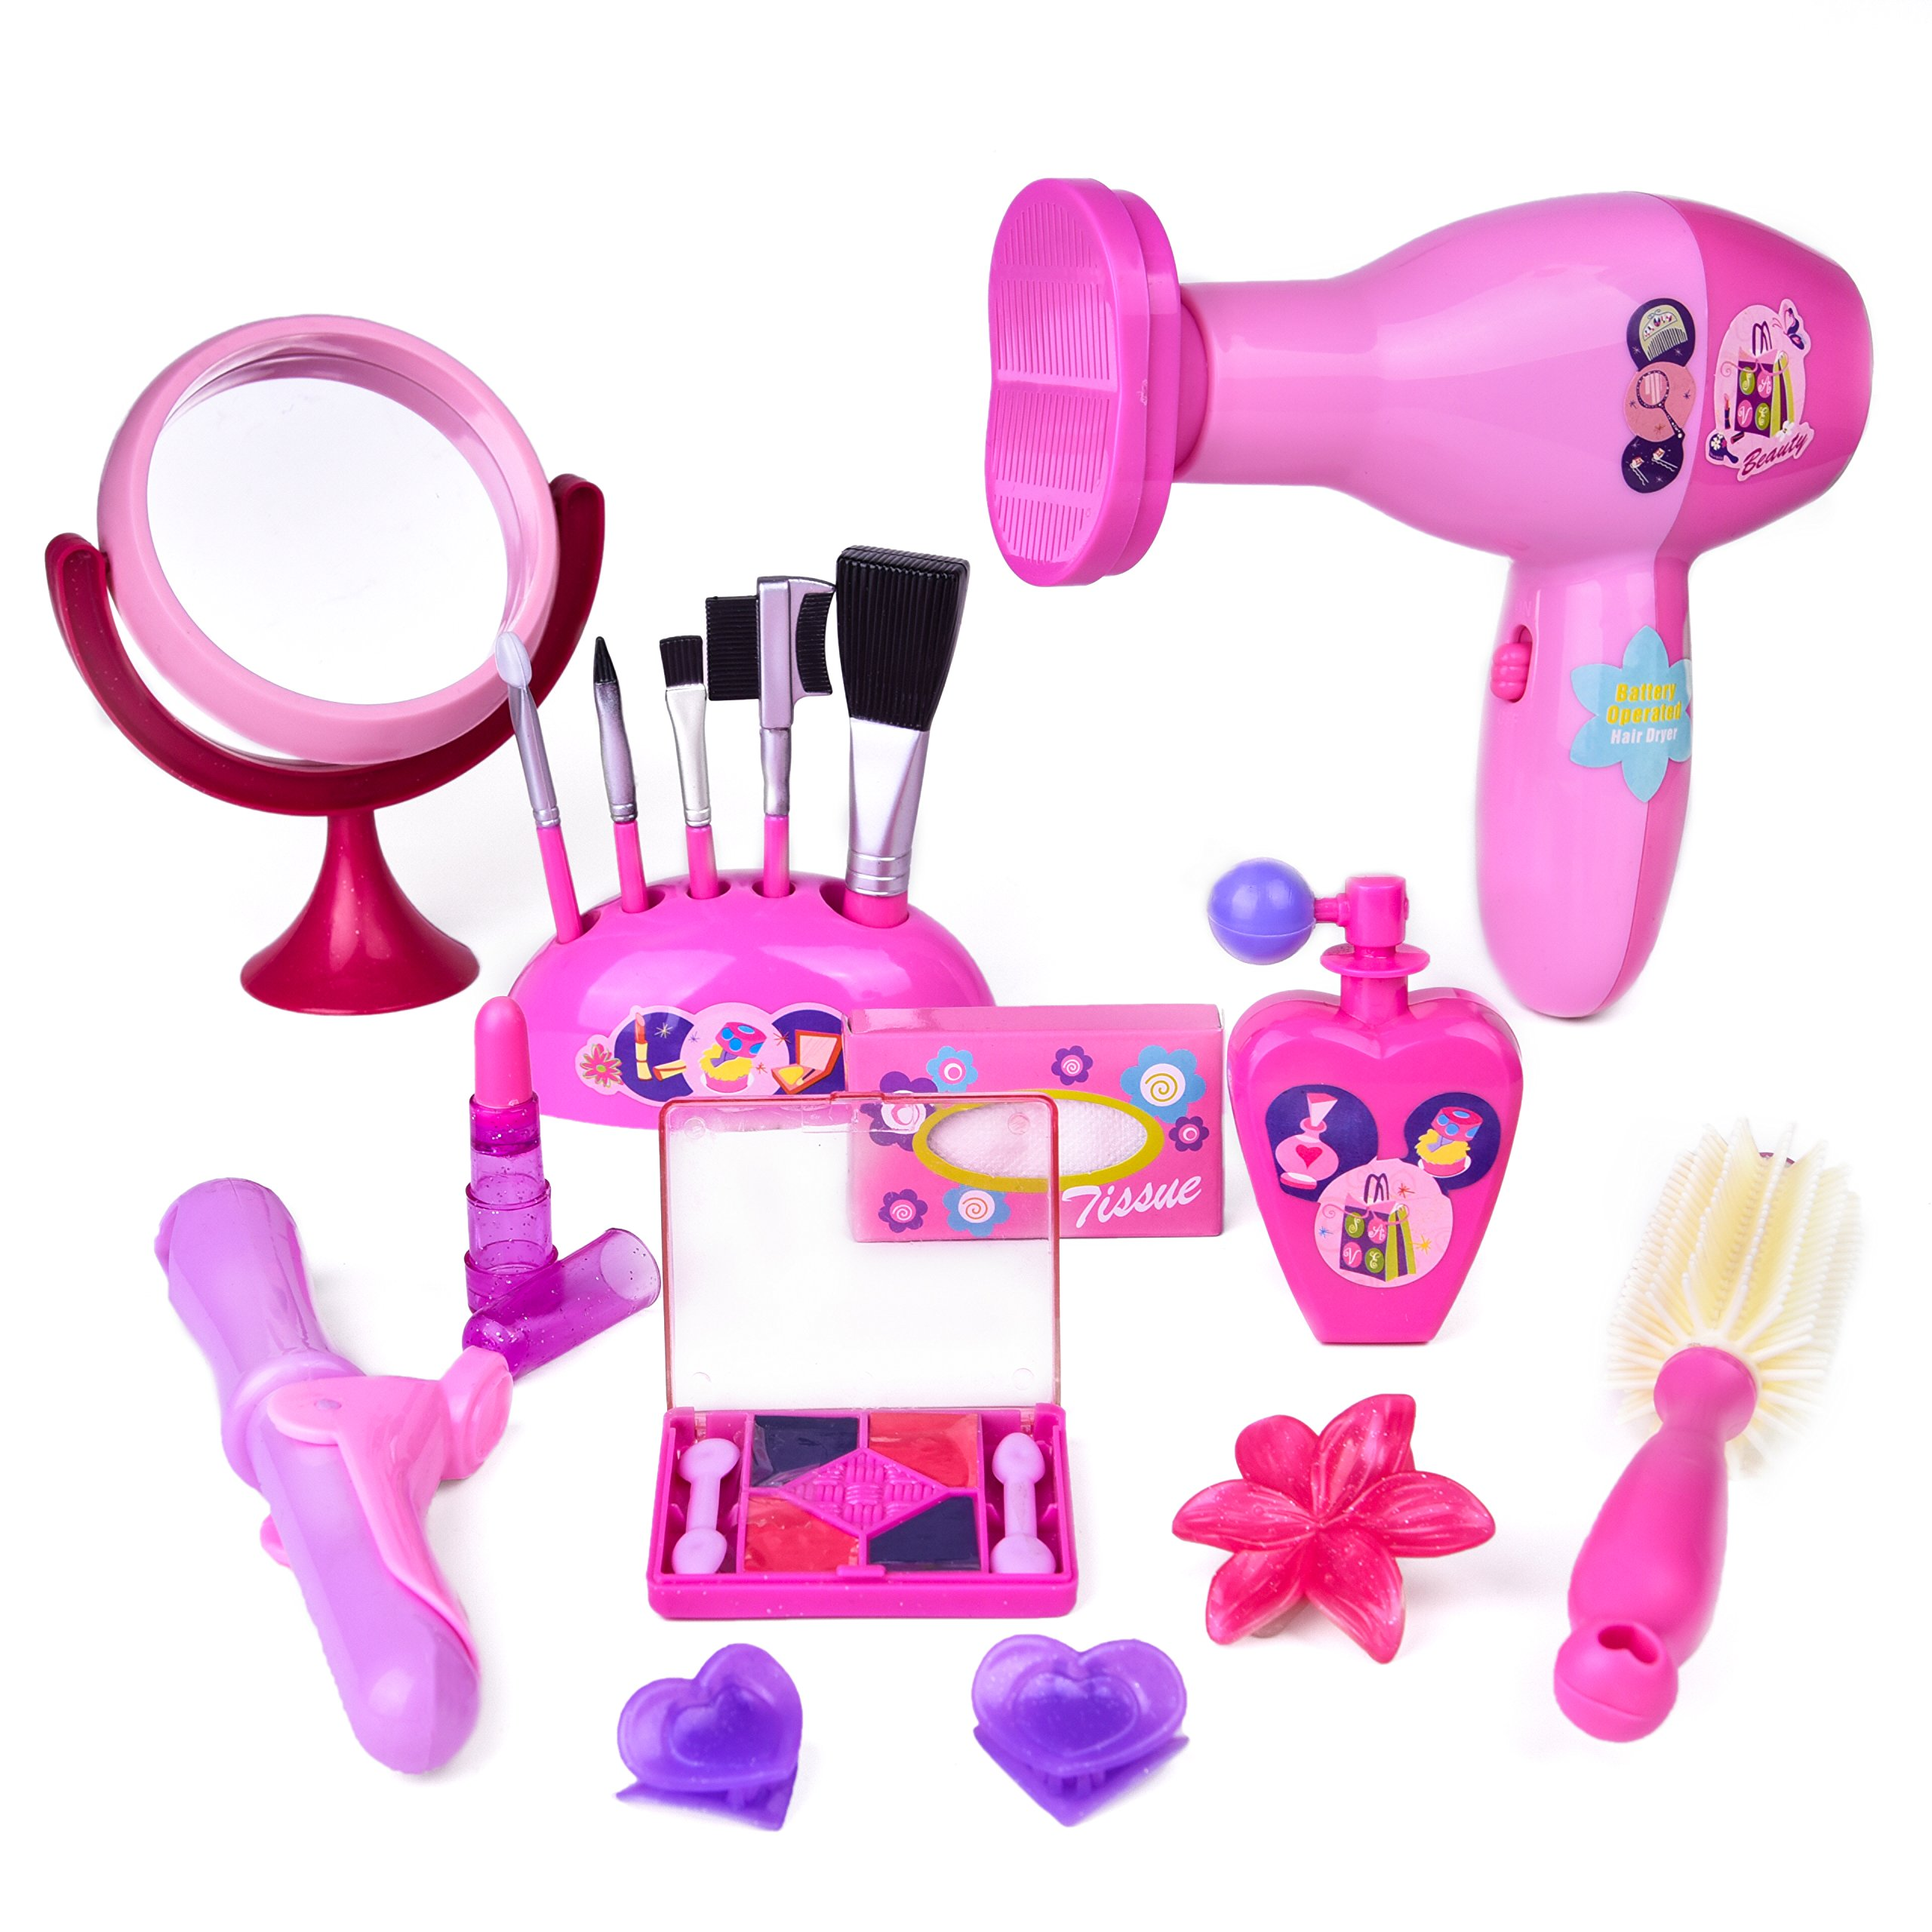 70c886631 Galleon Fun Little Toys Pretend Makeup For Girls Kids Play Kit Toddlers Toy  Set 3 Year